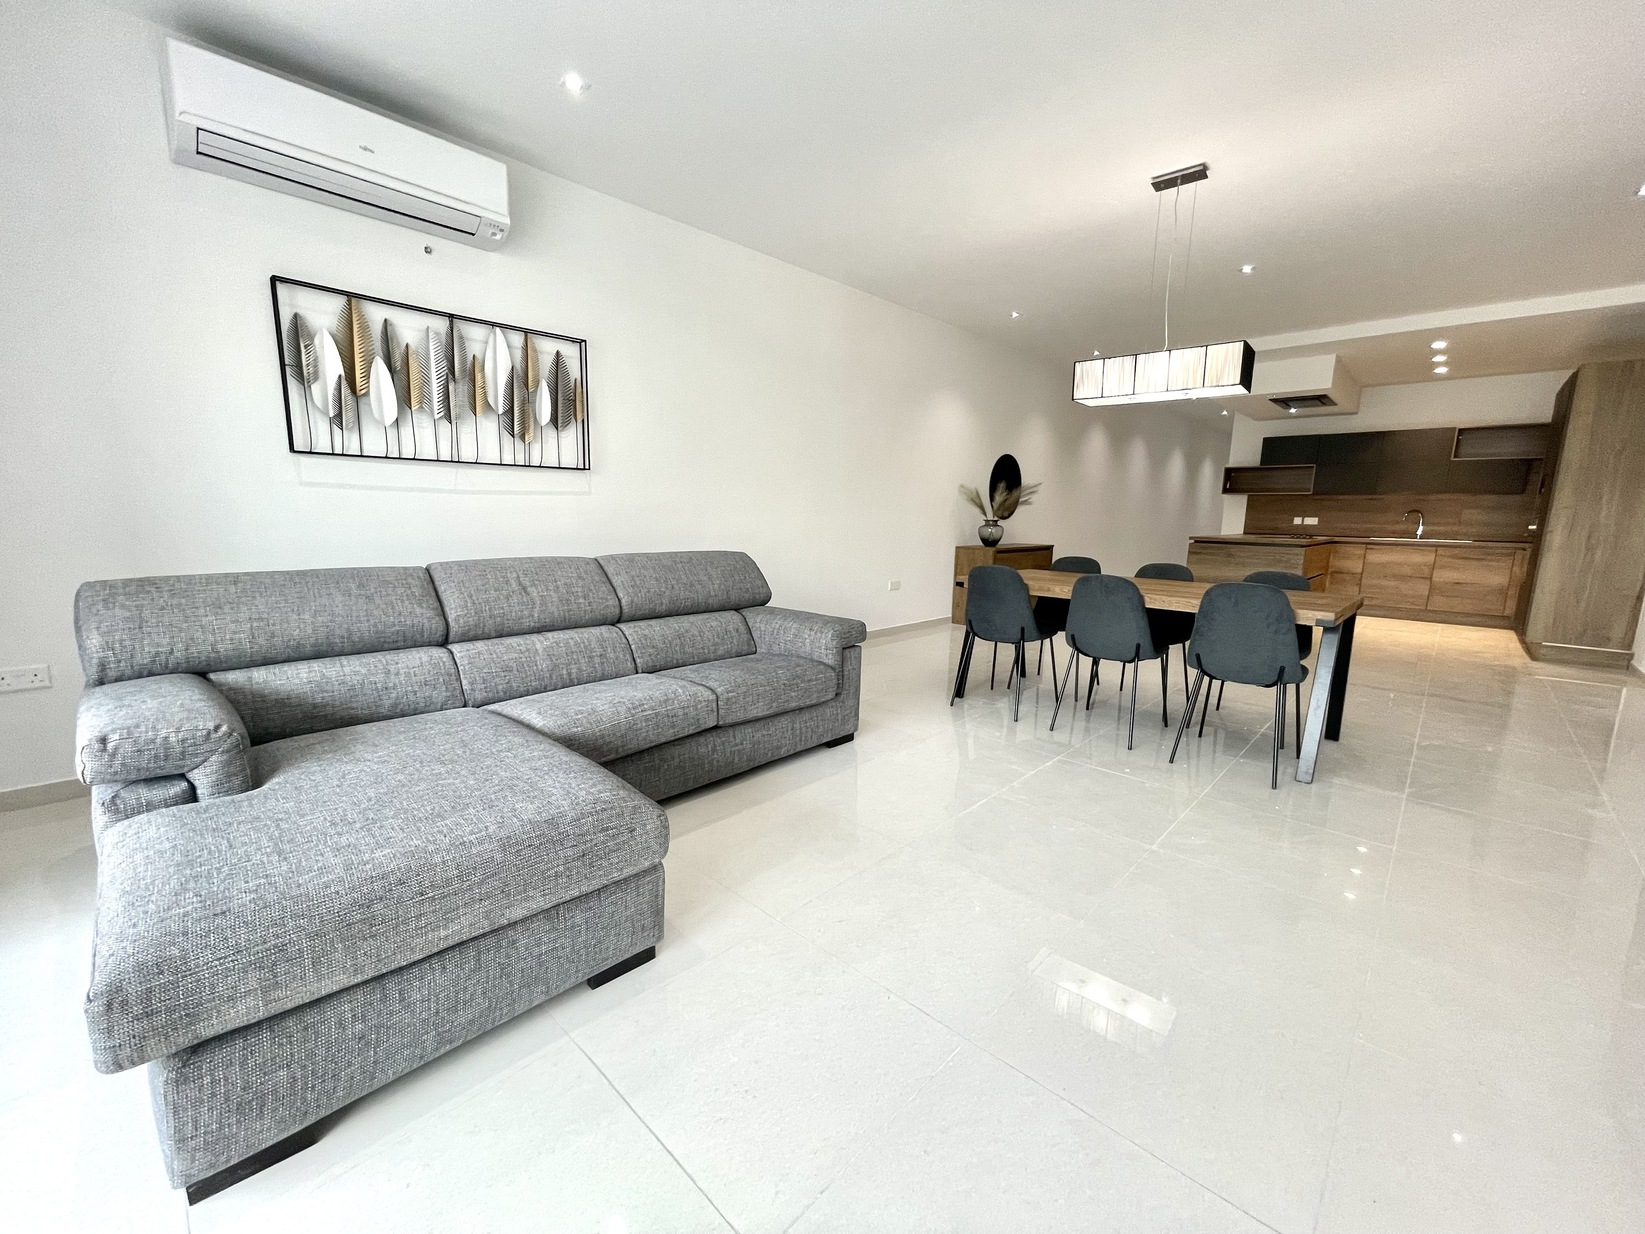 3 bed Apartment For Rent in Attard, Attard - thumb 3